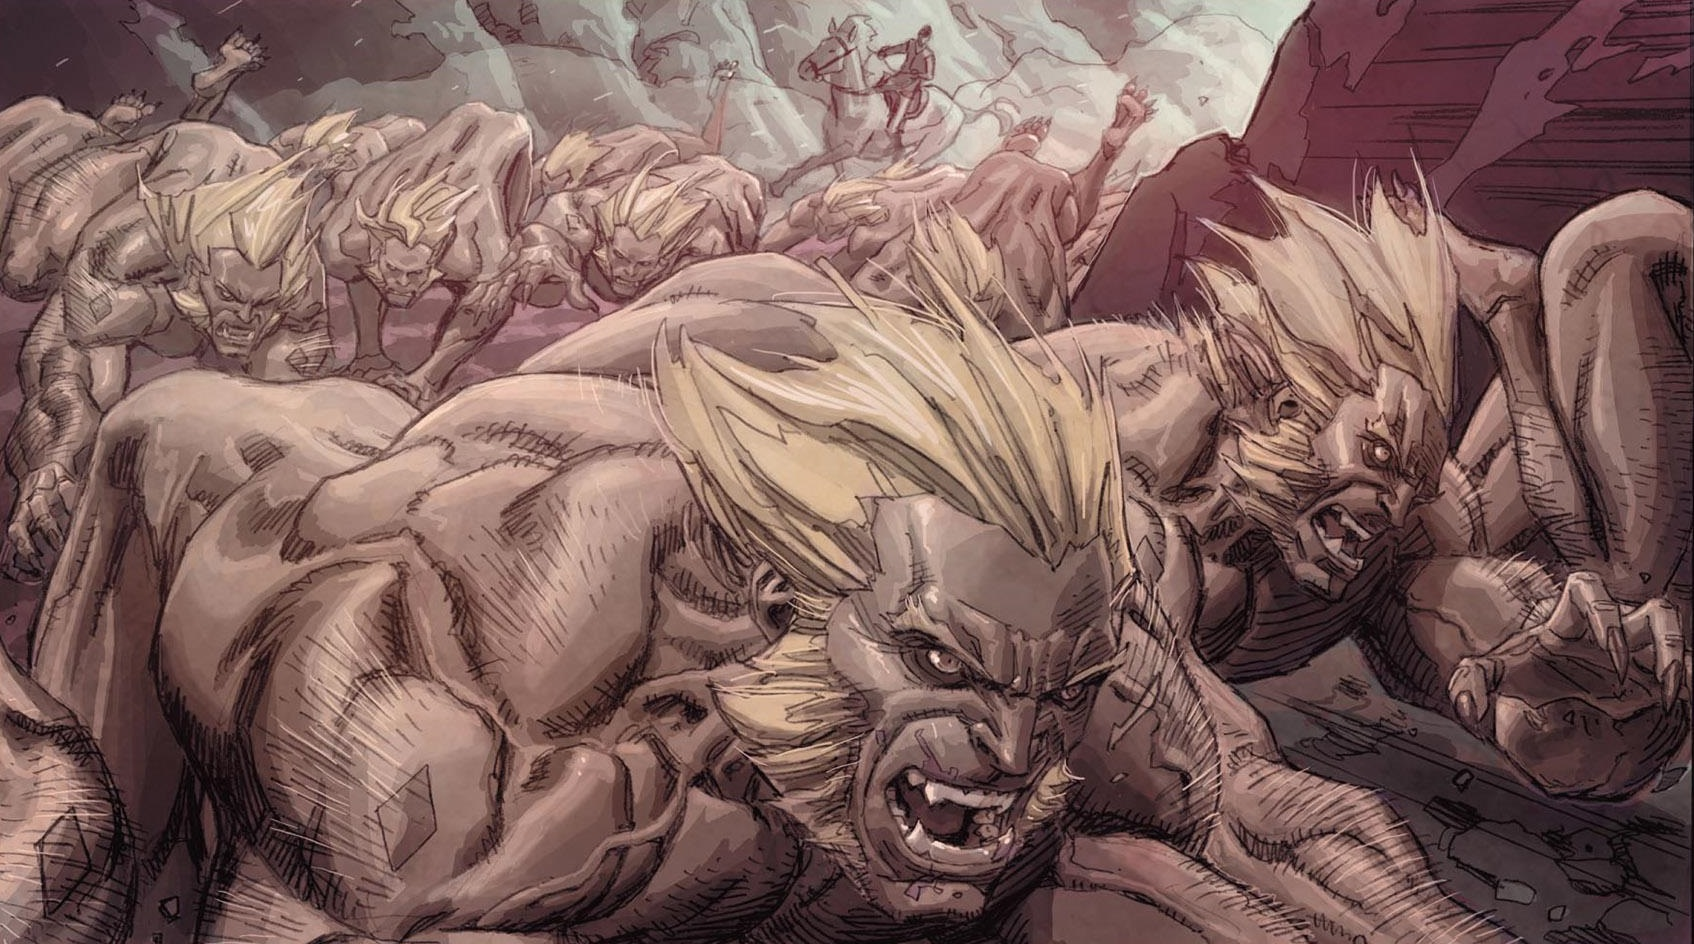 Sabretooth Hounds (Earth-616)/Gallery